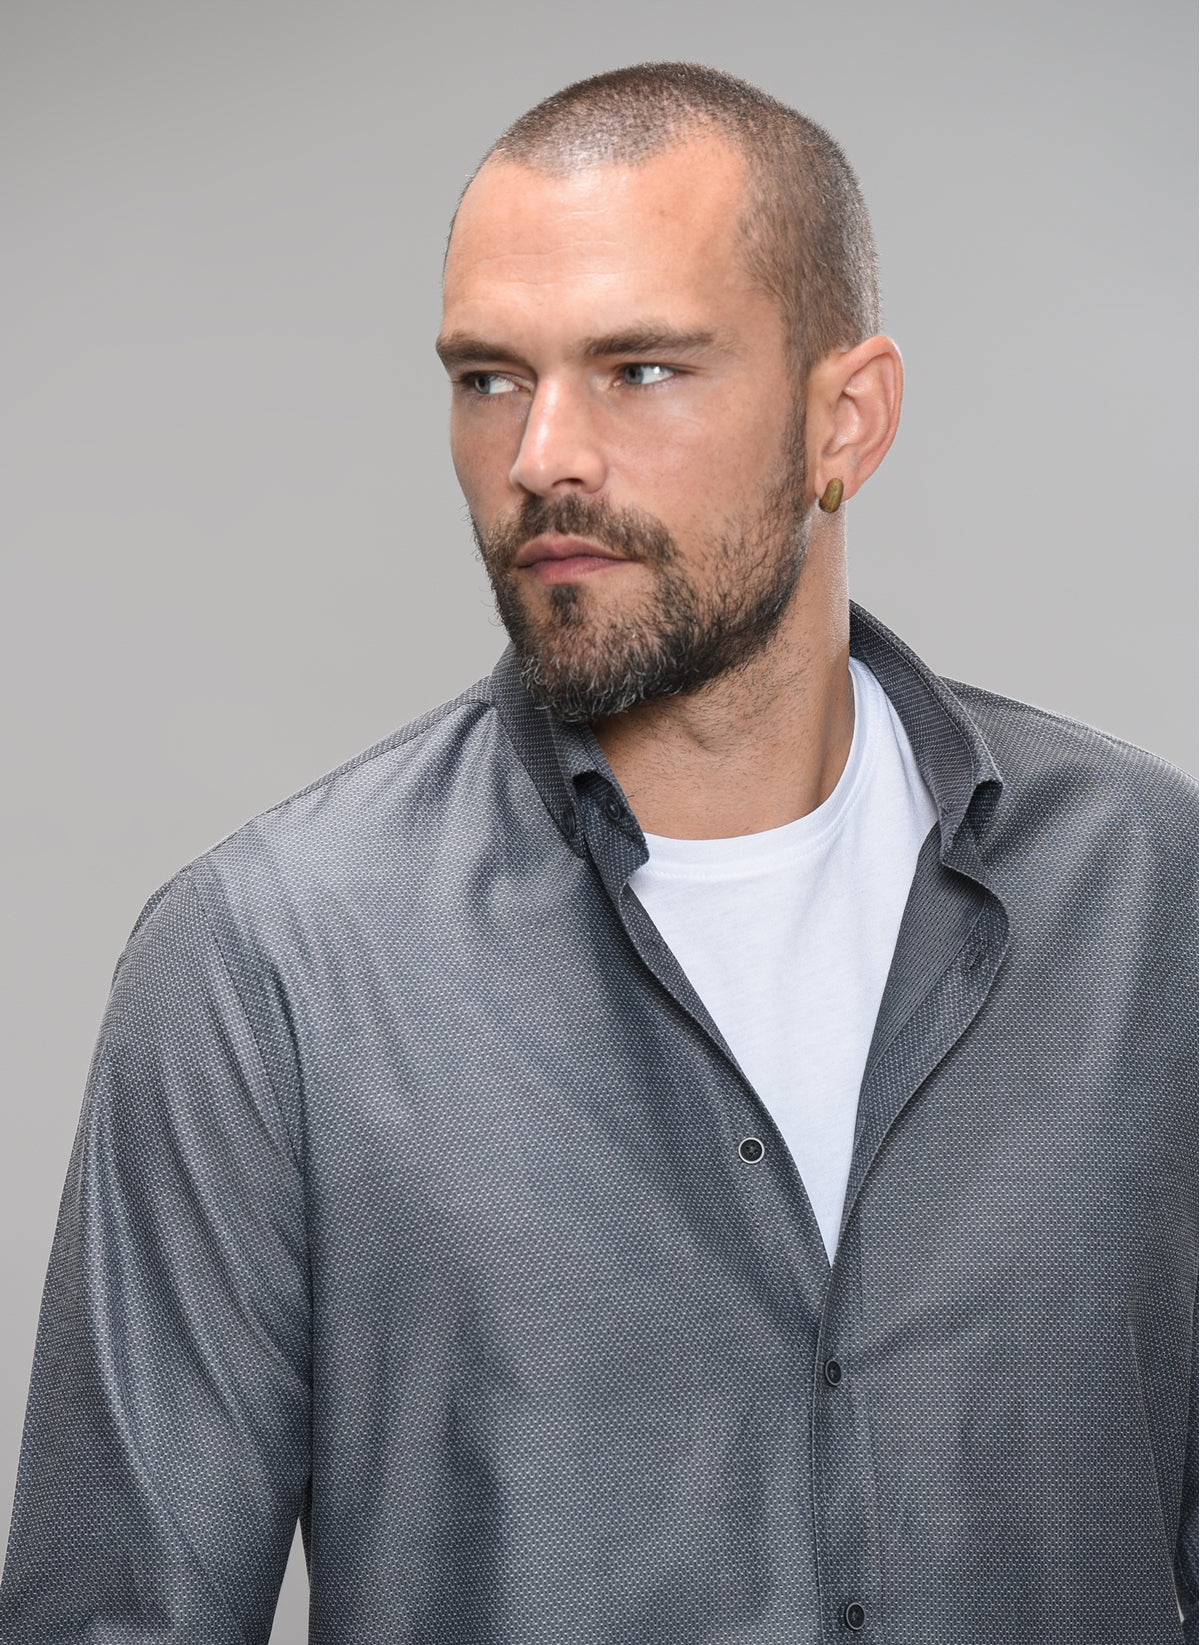 Textured Button-Down Shirt in Grey